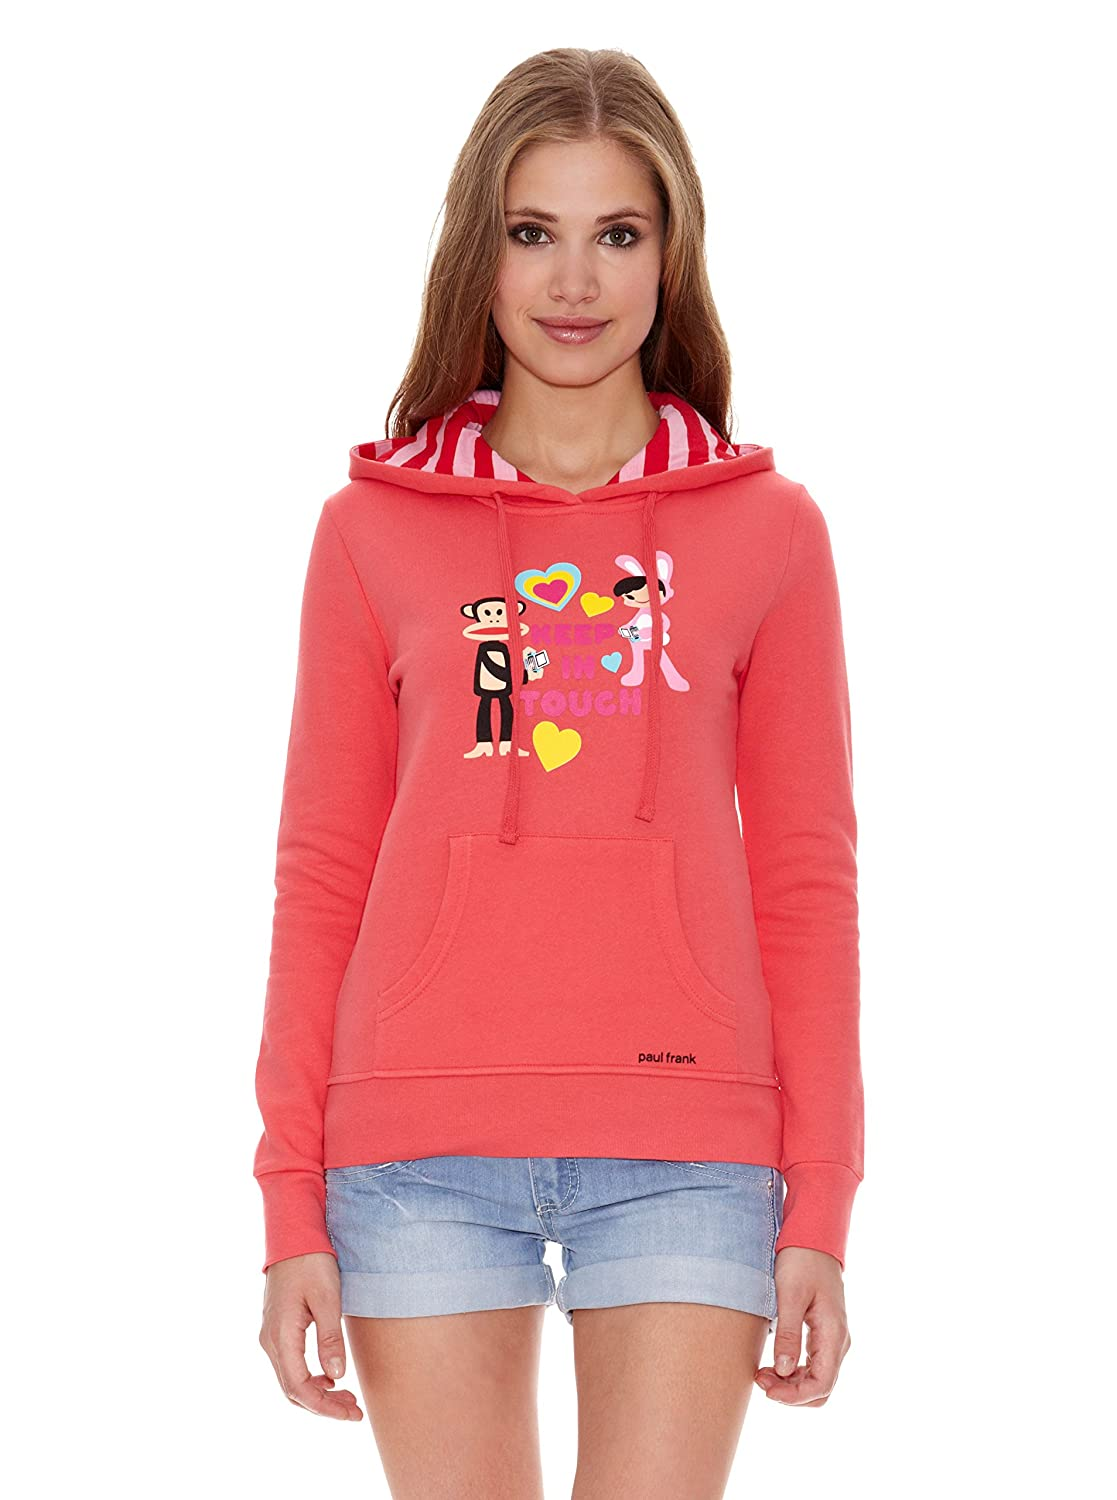 Paul Frank Sudadera W Pf Keep In Touch With Julius Rosa S: Amazon.es: Ropa y accesorios